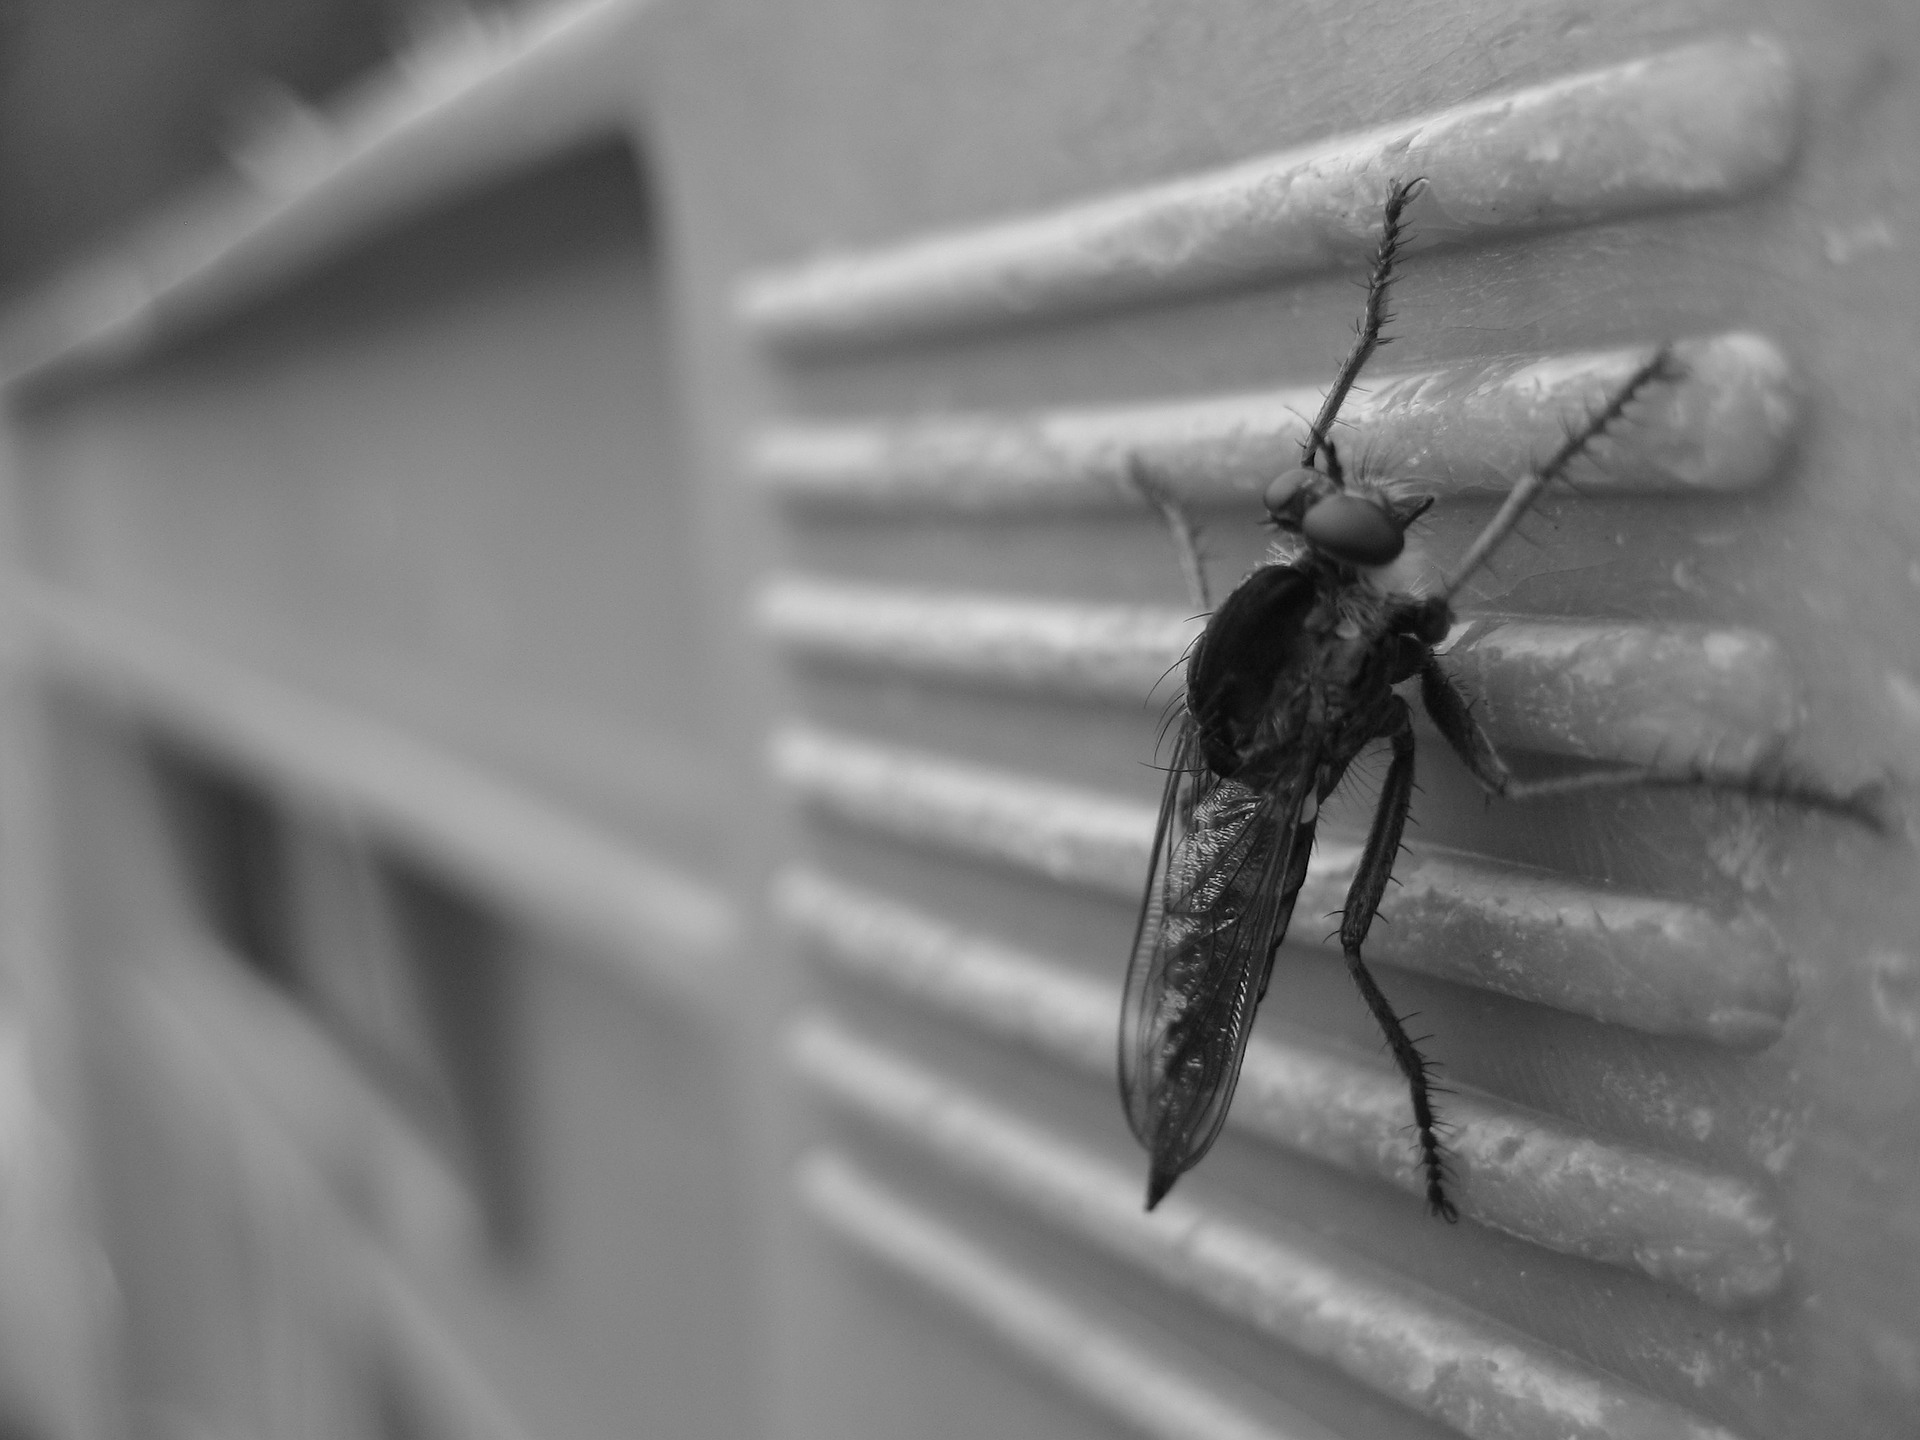 mosquito on wall